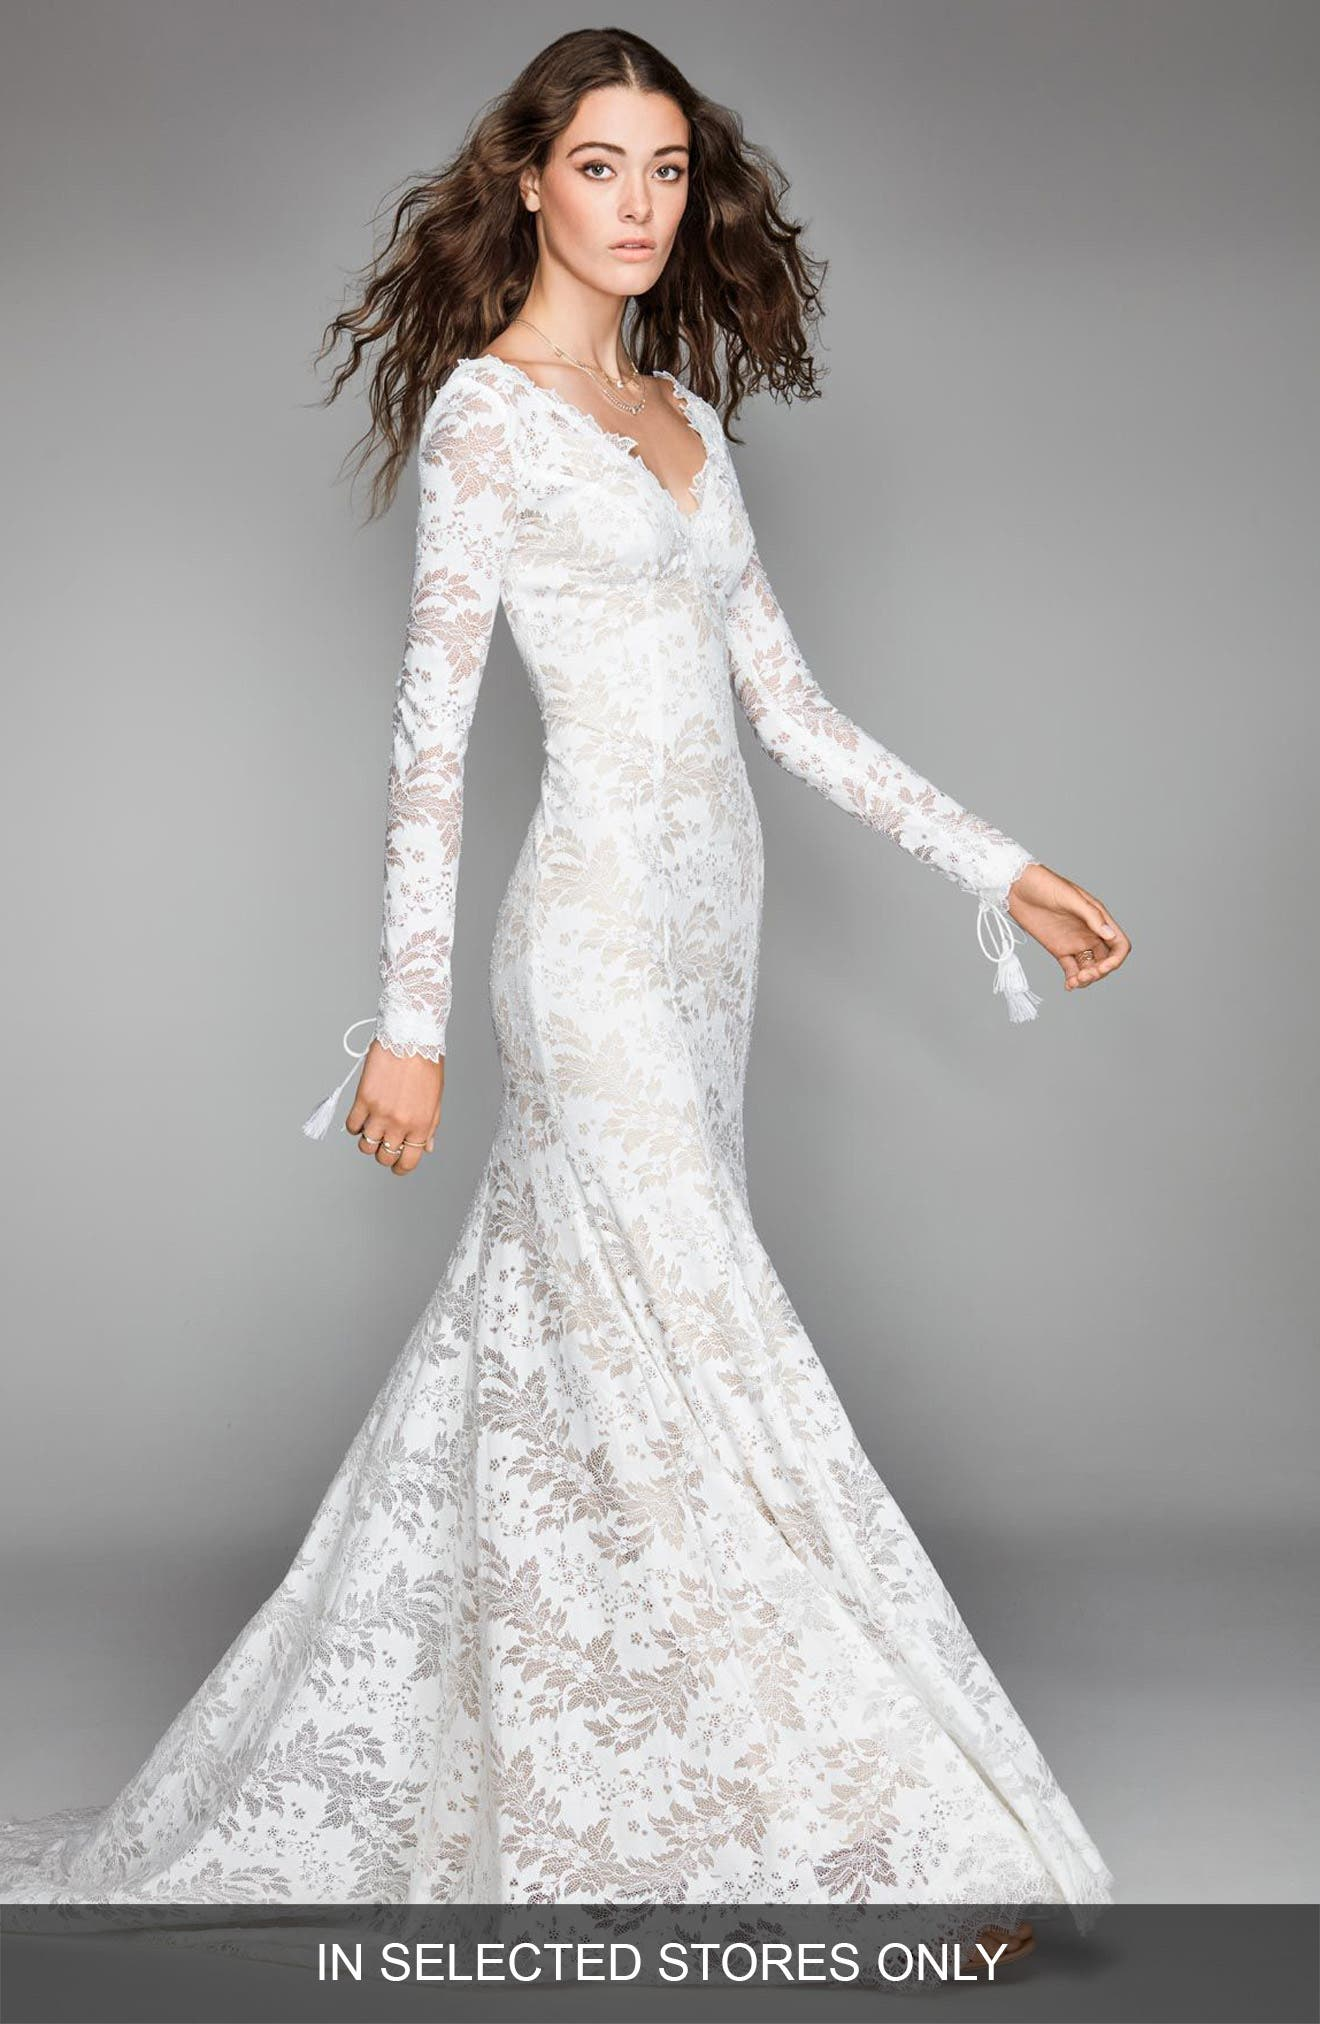 Luna Lace Mermaid Gown,                             Main thumbnail 1, color,                             Ivory/ Nude